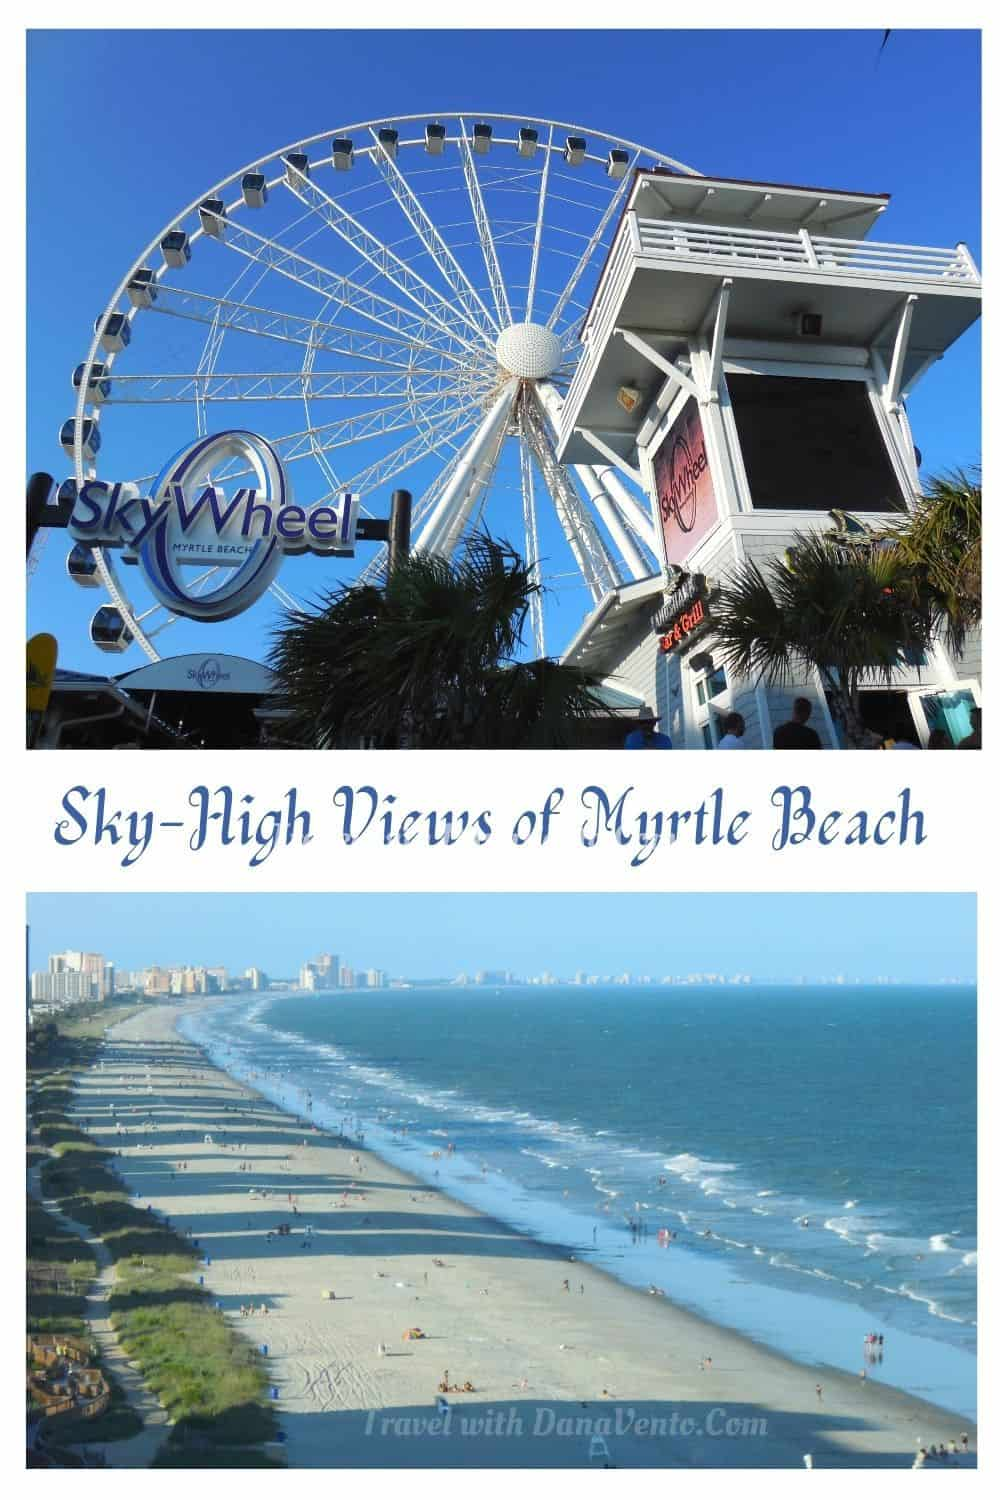 Sky High Views of Myrtle Beach SkyWheel Image and Beach